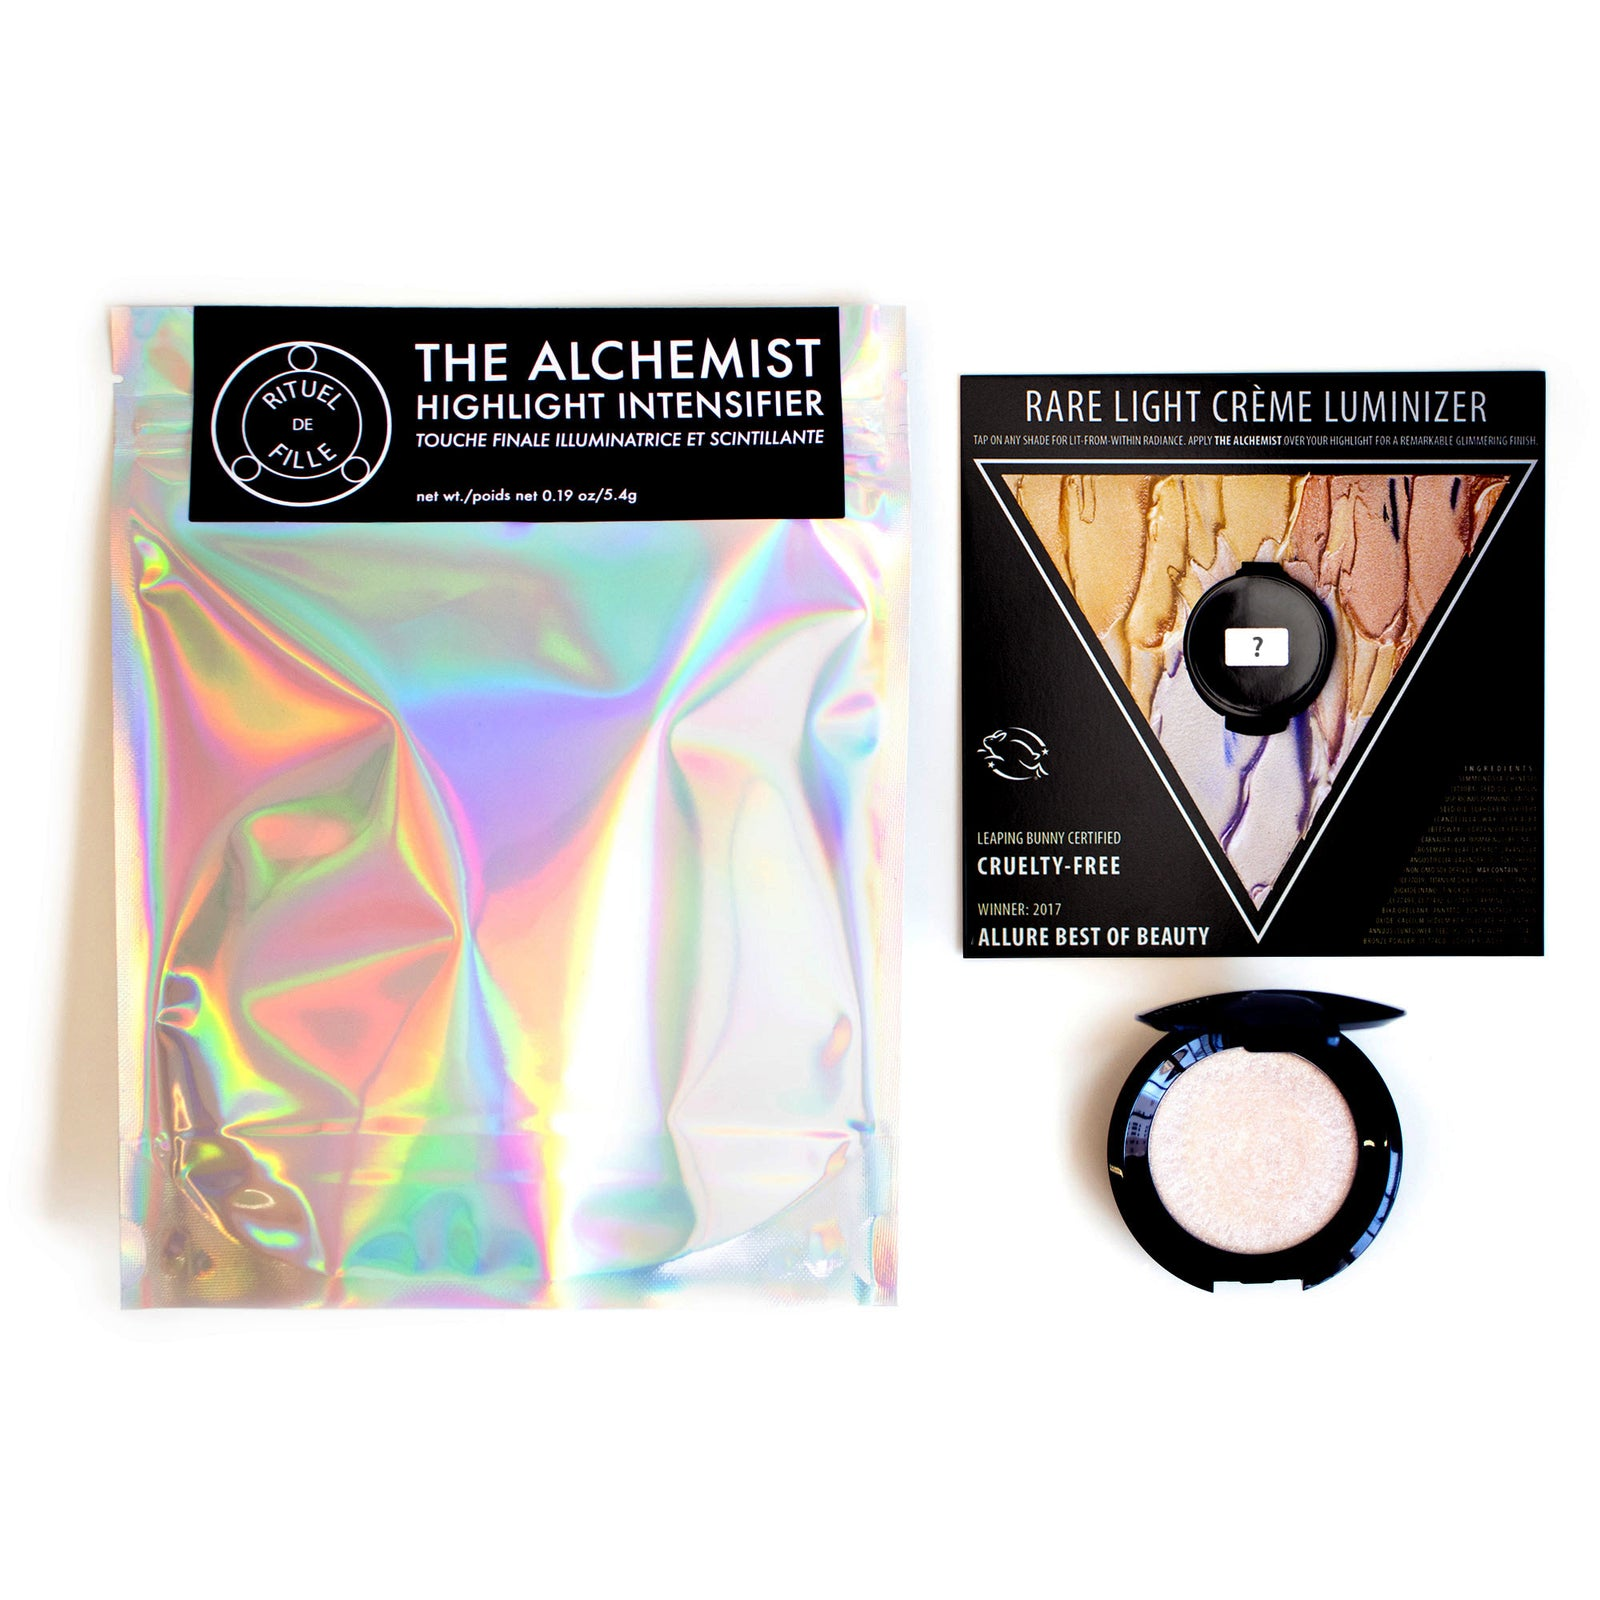 The Alchemist Highlight Intensifier